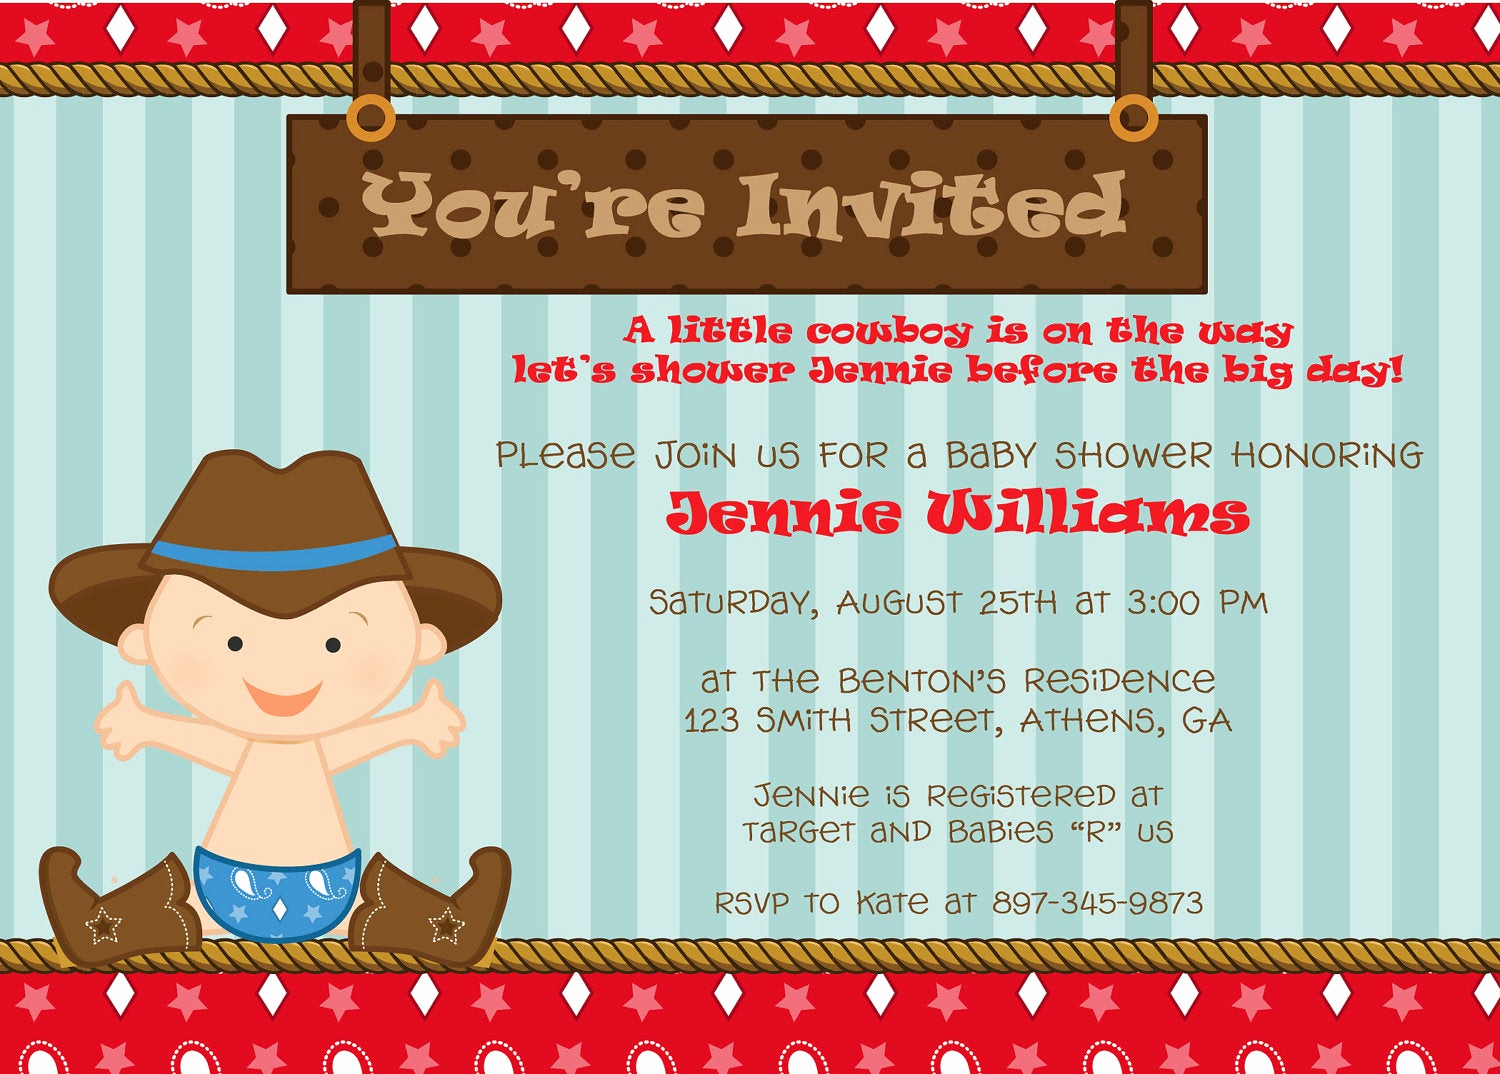 Western Baby Shower Invitation New Cute Cowboy Baby Shower Invitation or Birthday Invitation